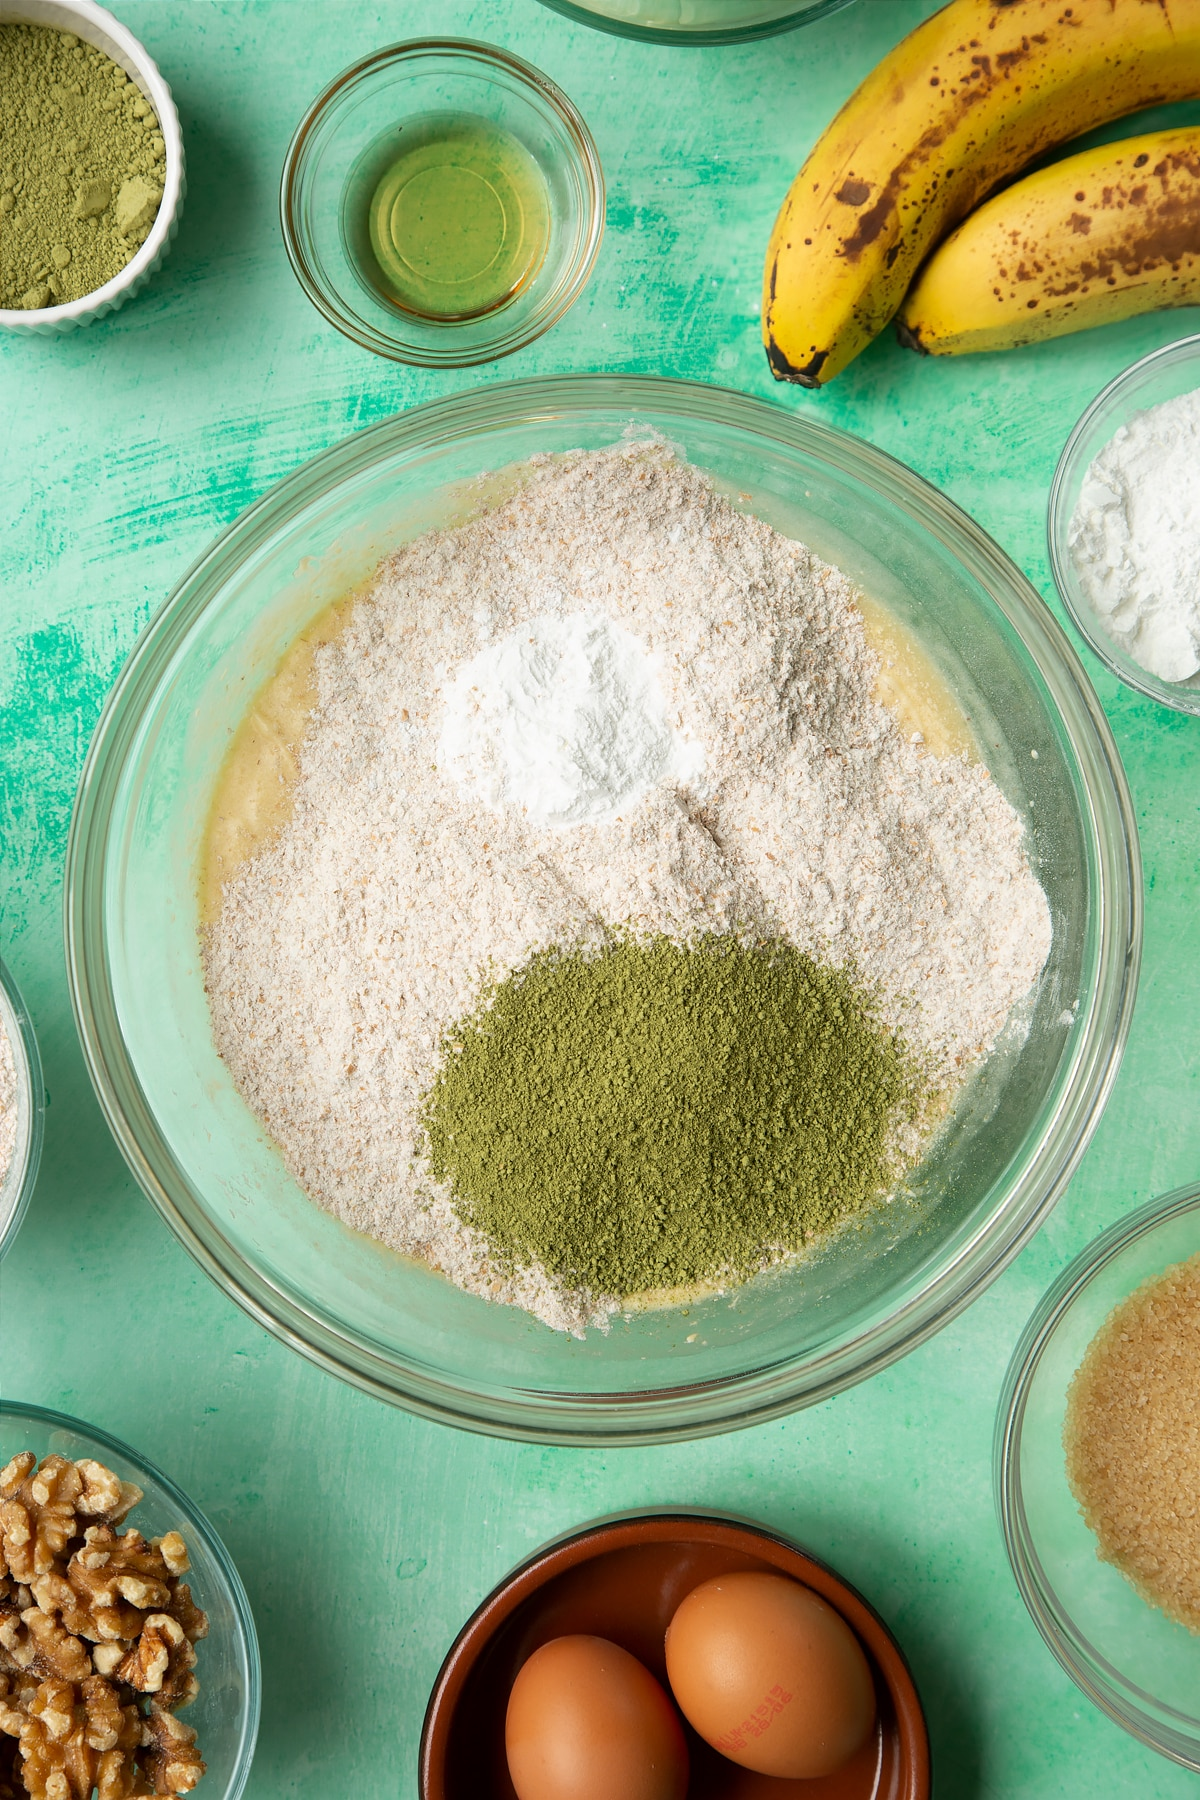 Overhead shot of flour, matcha tea powder and baking powder in a large bowl